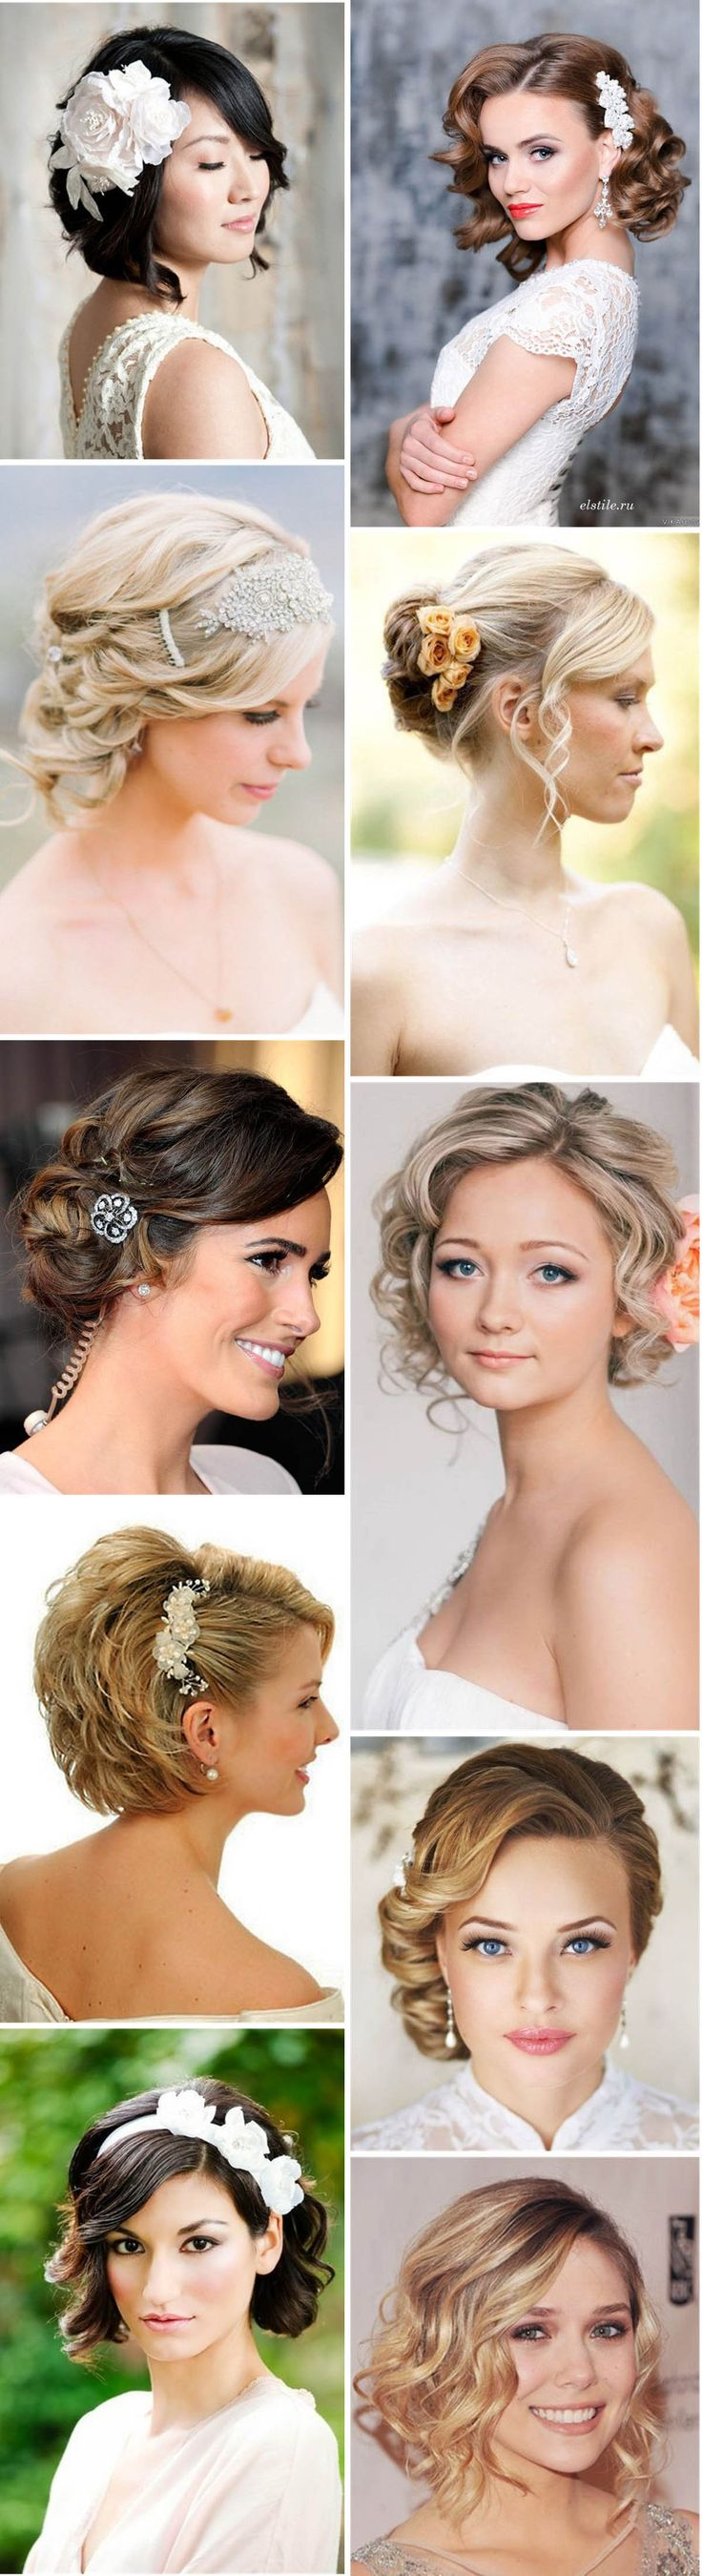 short hair styles wedding 1000 ideas about wedding hairstyles on 2926 | 1aac2dc475551c00b61e4c2aed2afc1f